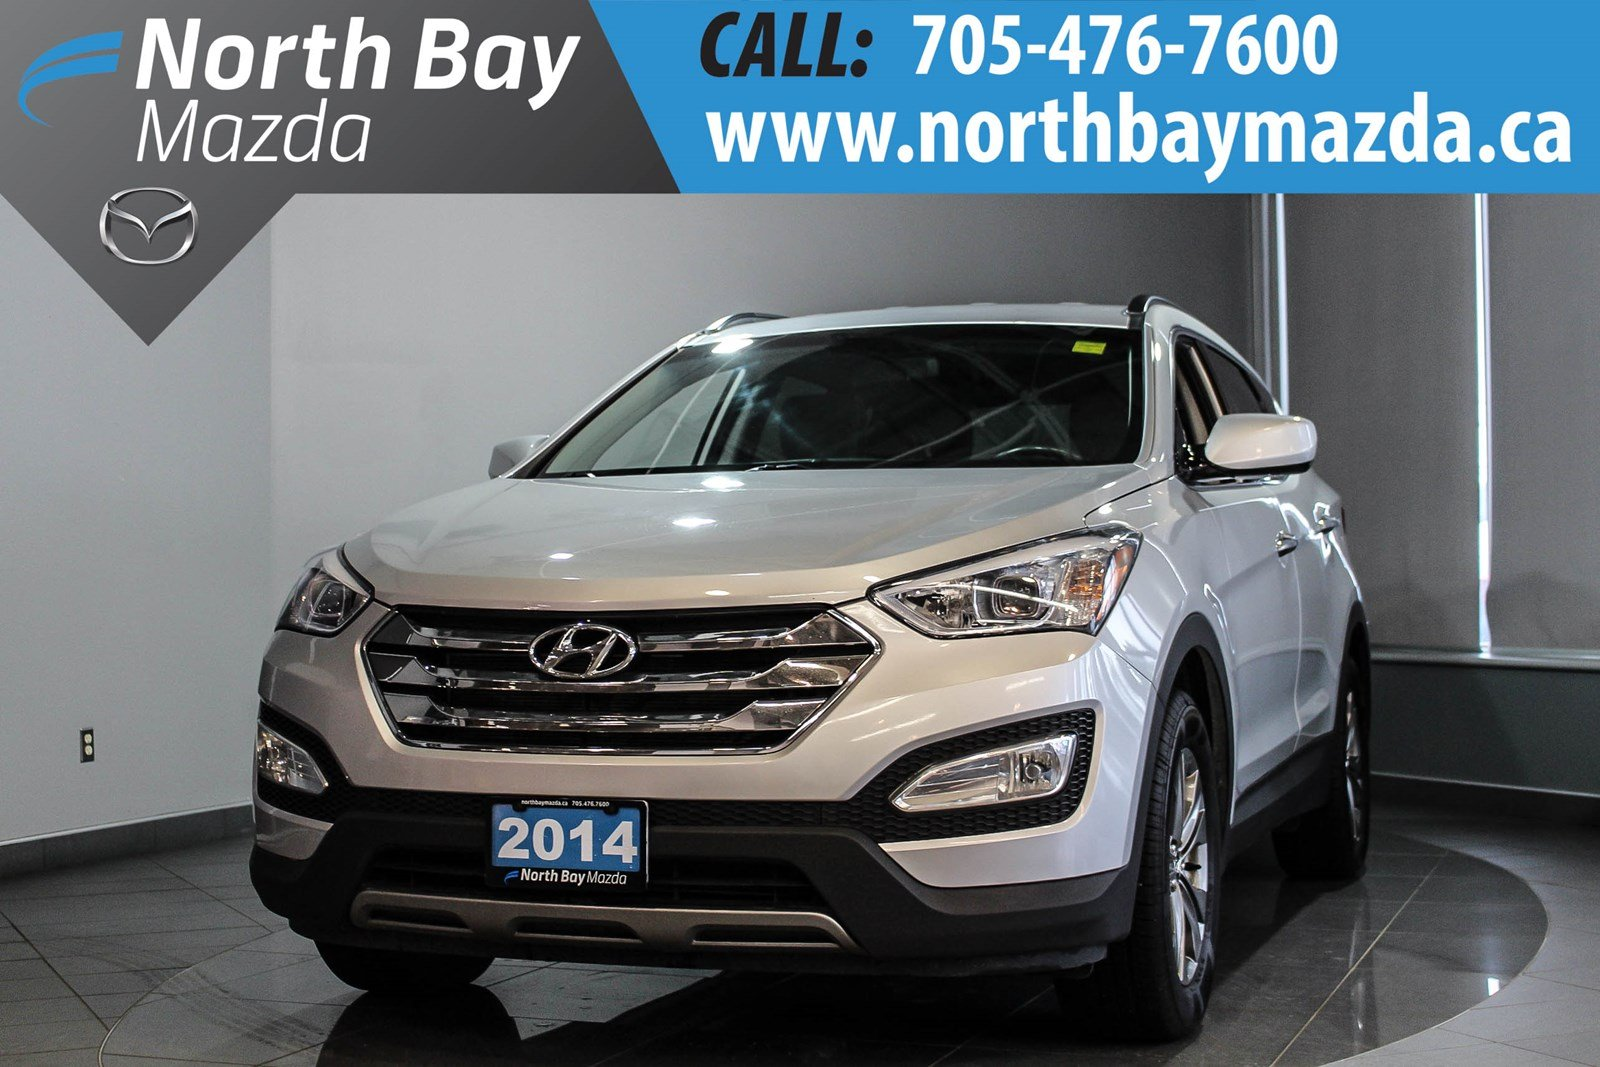 Pre-Owned 2014 Hyundai Santa Fe Sport 2.4L FWD with Heated Seats, Auto Headlights